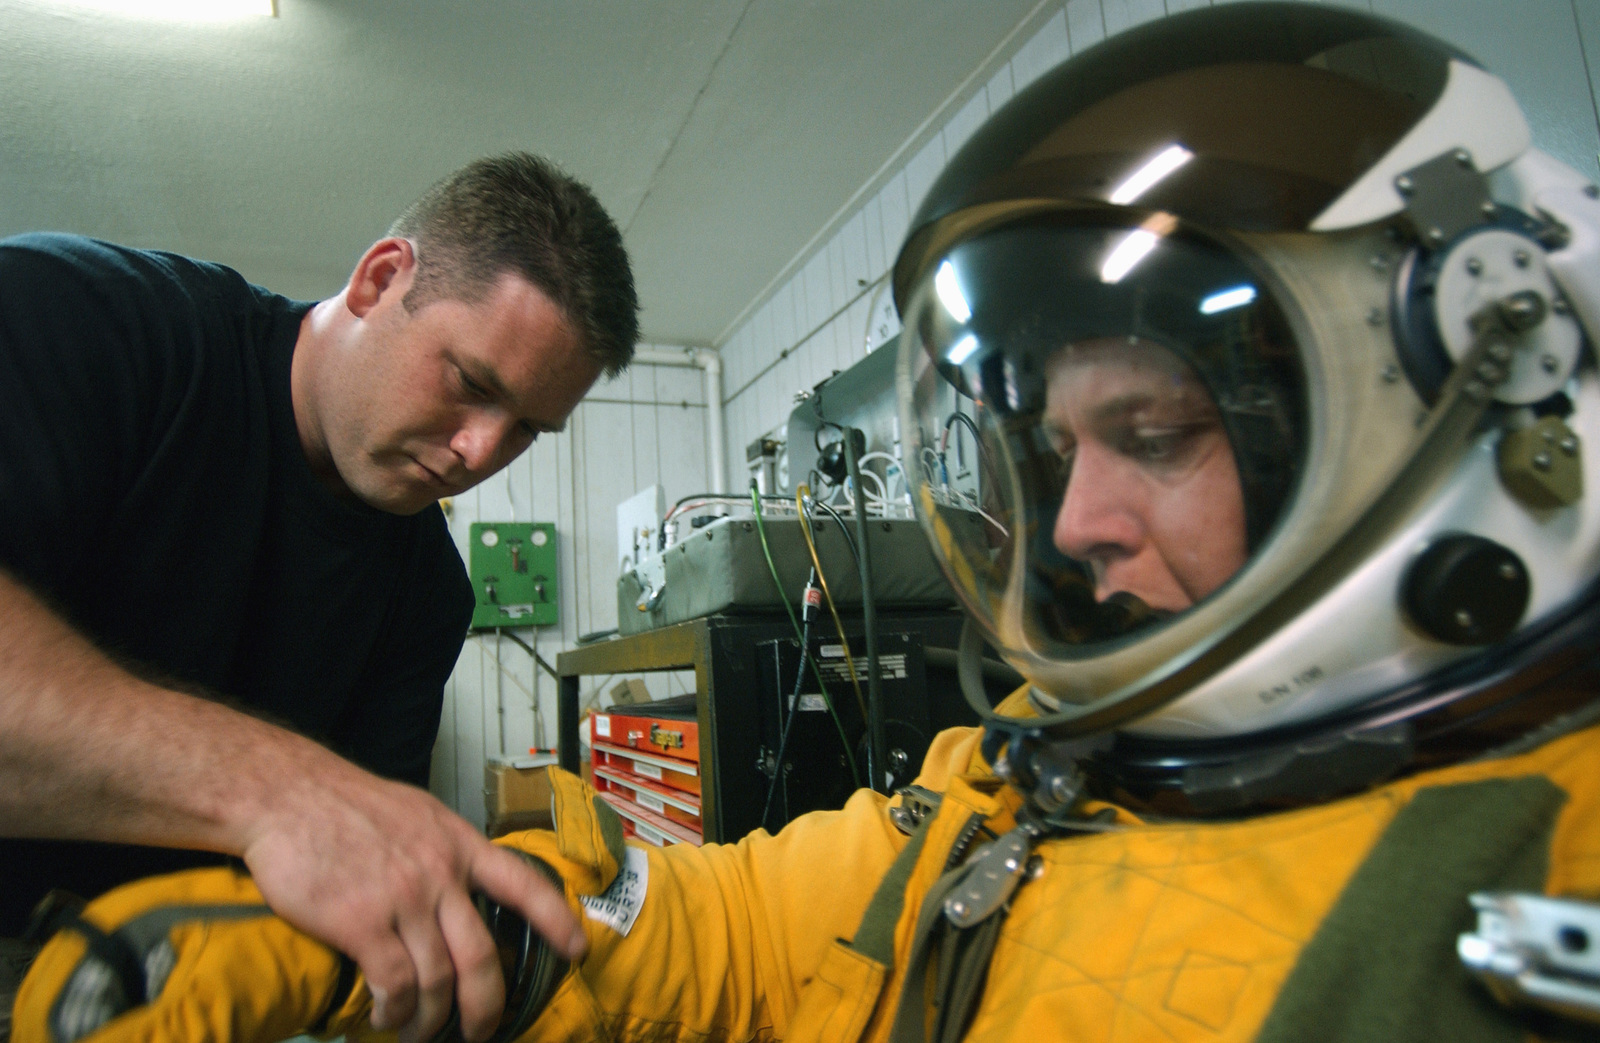 US Air Force (USAF) STAFF Sergeant (SSGT) Jeff Gilbert, physiological support division Technician assigned to the 9th Aircraft Maintenance Squadron, 363rd Expeditionary Aircraft Maintenance Squadron, assists USAF Major (MAJ) John Long, a U-2 Dragon Lady aircraft Pilot assigned to the 99th Reconnaissance Squadron, 363rd Expeditionary Reconnaissance Squadron, into his 1034 pressure suit in preparation for a mission in support of Operation IRAQI FREEDOM